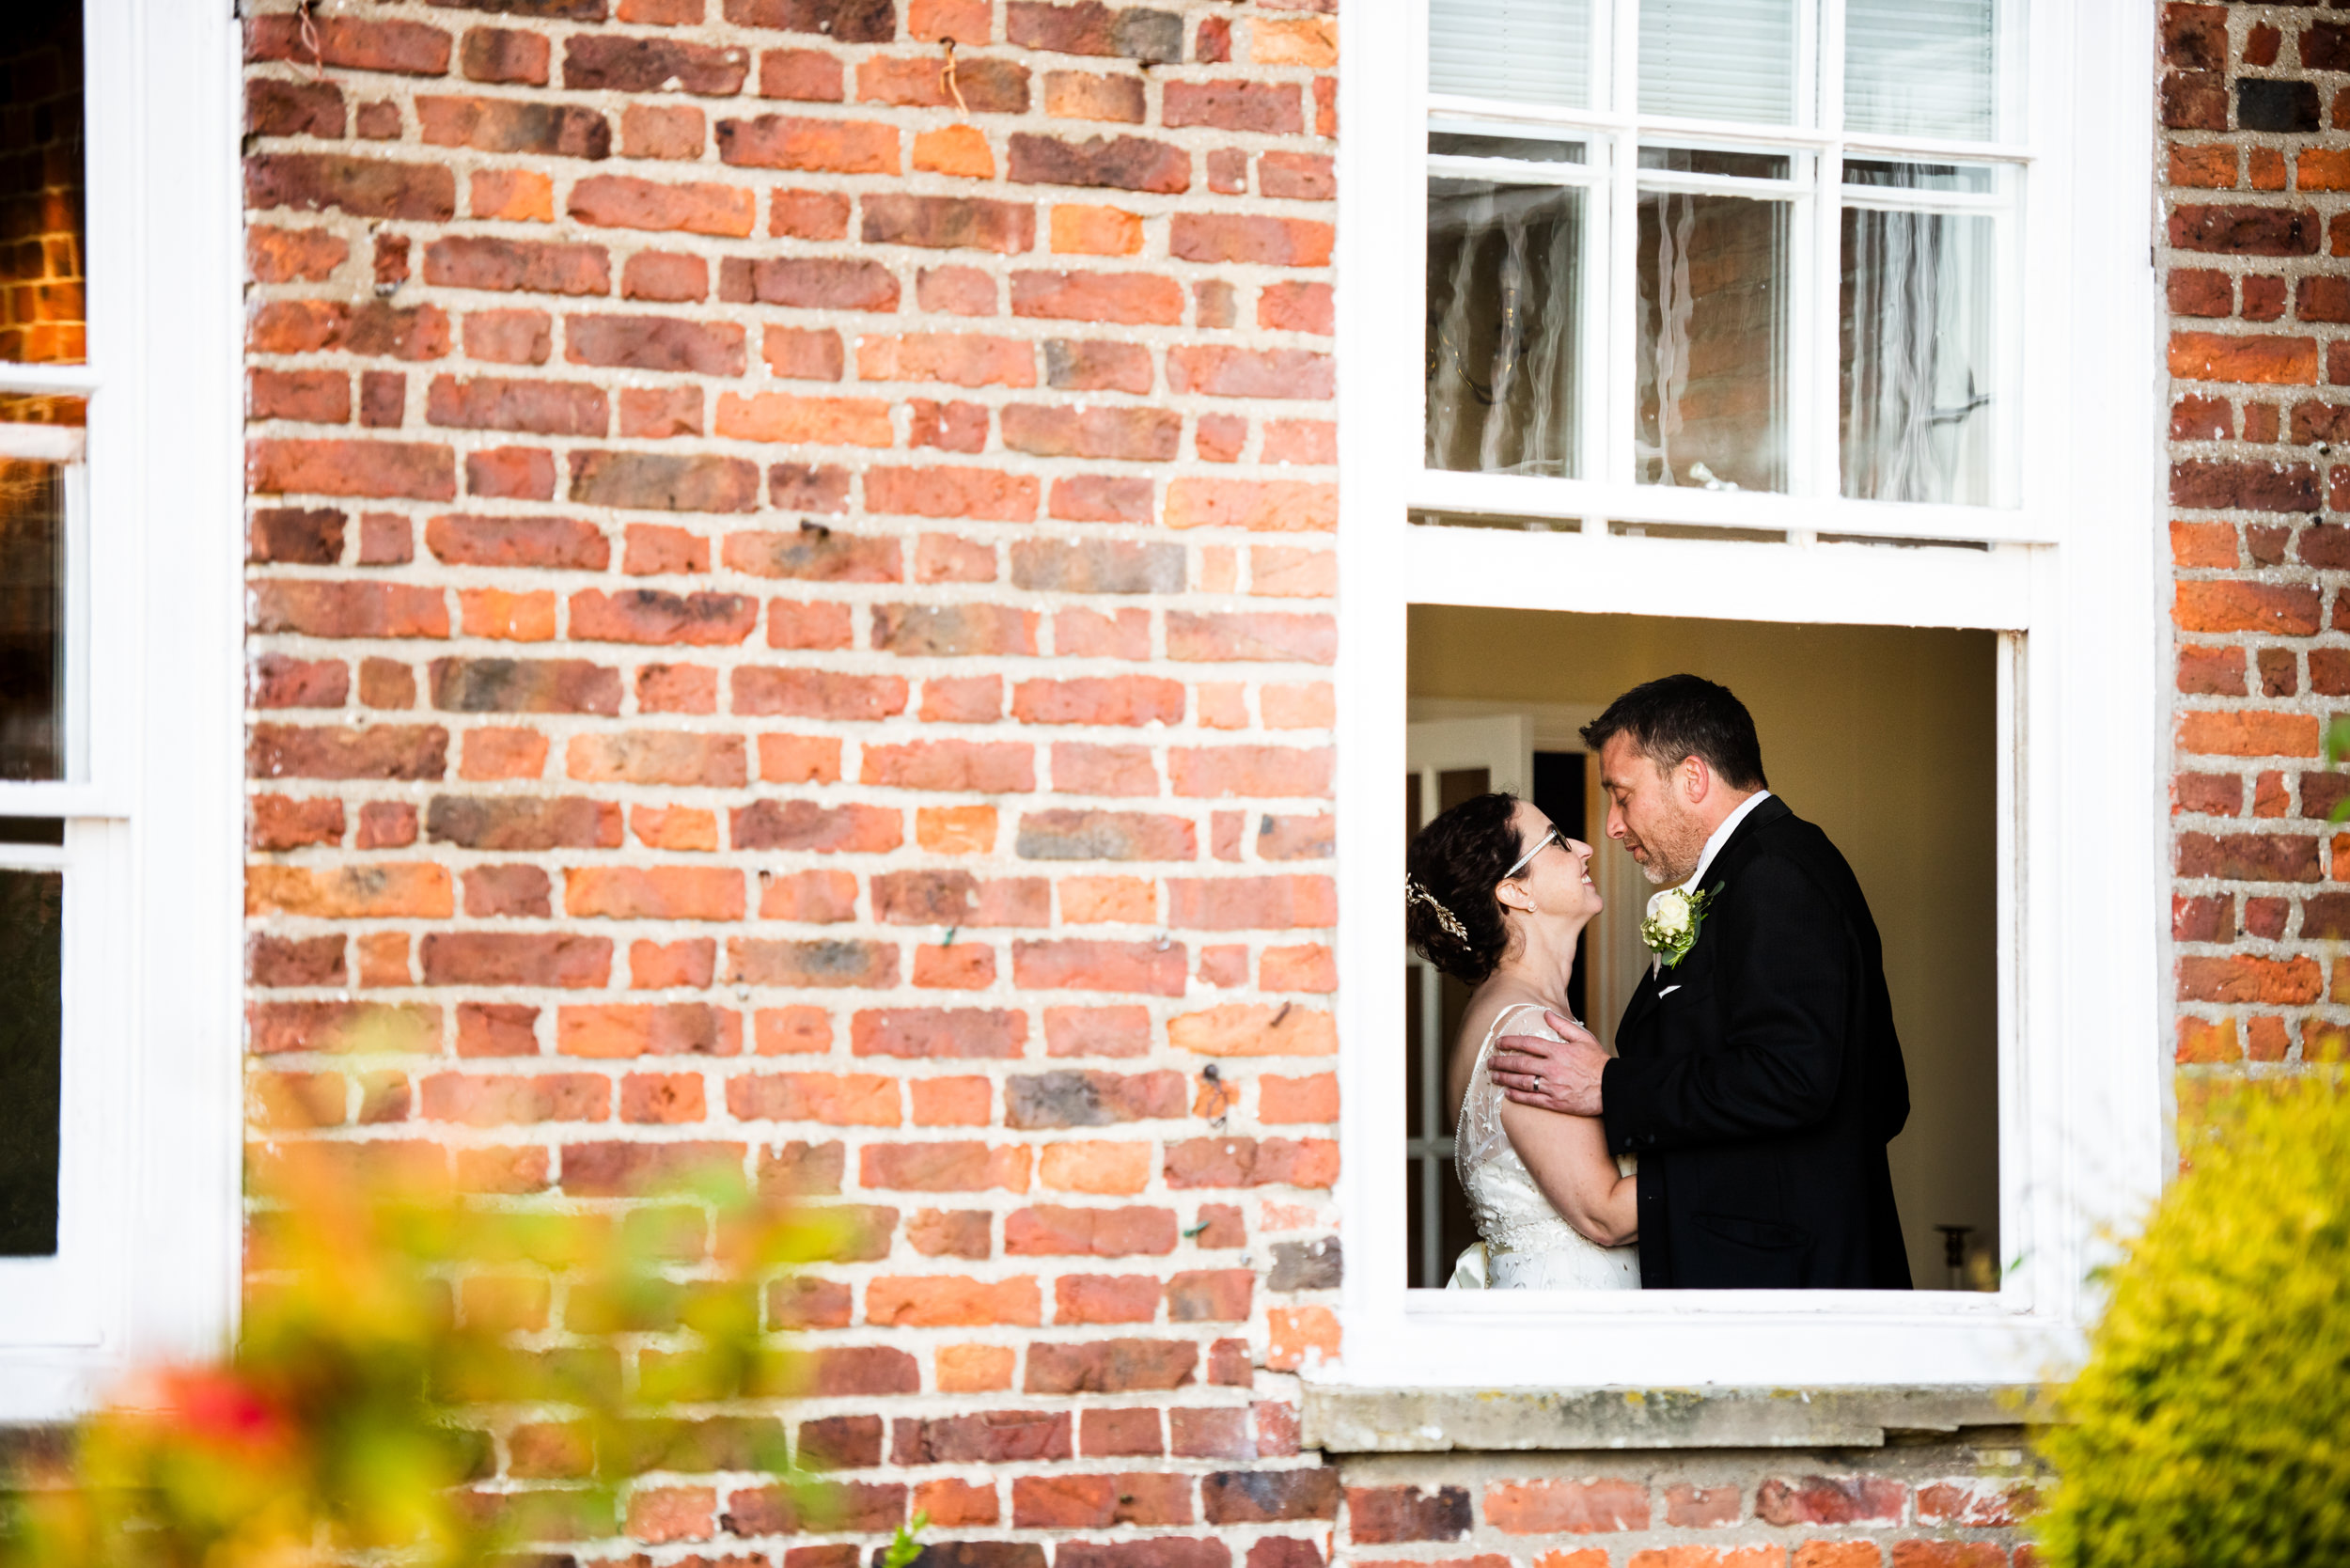 Outside portrait  through a window of a newlywed couple holding each other inside